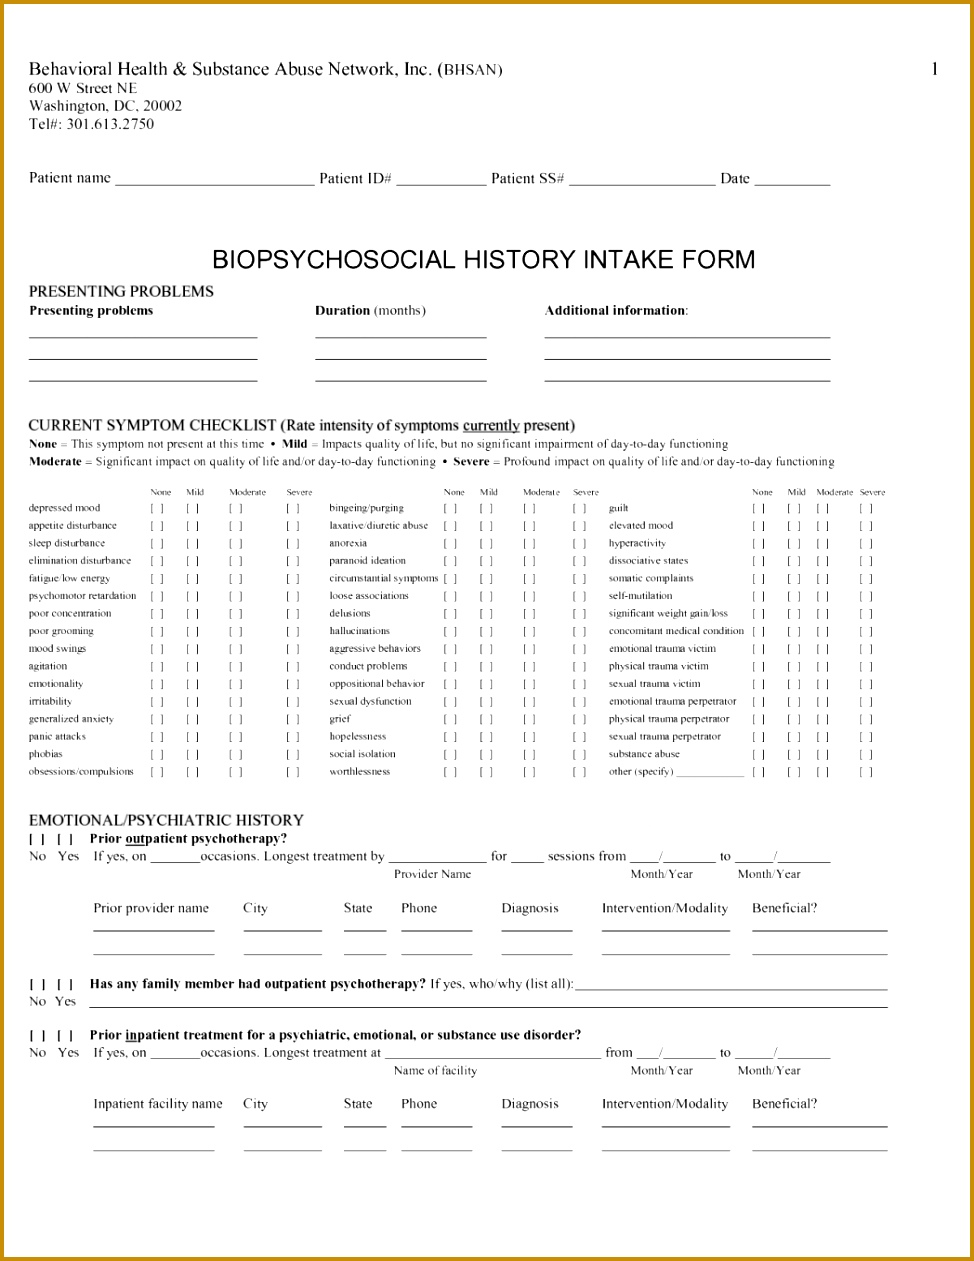 Intake Forms Awakened Heart Healing Arts Patient Form Template I Social History Intake Form Art Therapy Pinterest Patient line 5925c51c8d7ed8bb0114e05f9fc 1261974